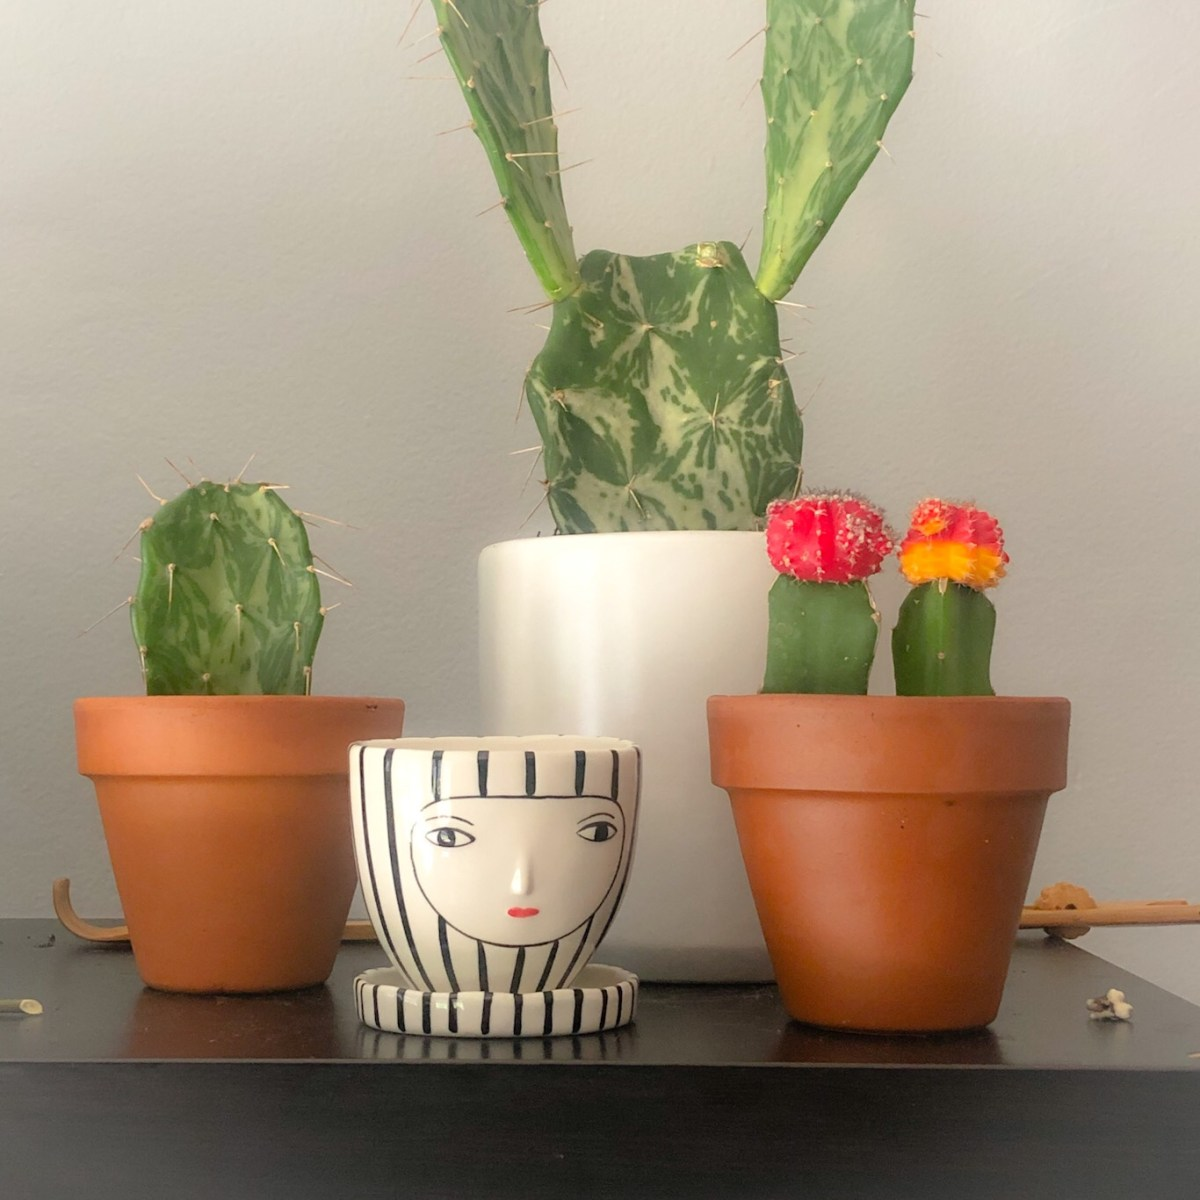 Kinska x Anthropologie Planter Pot